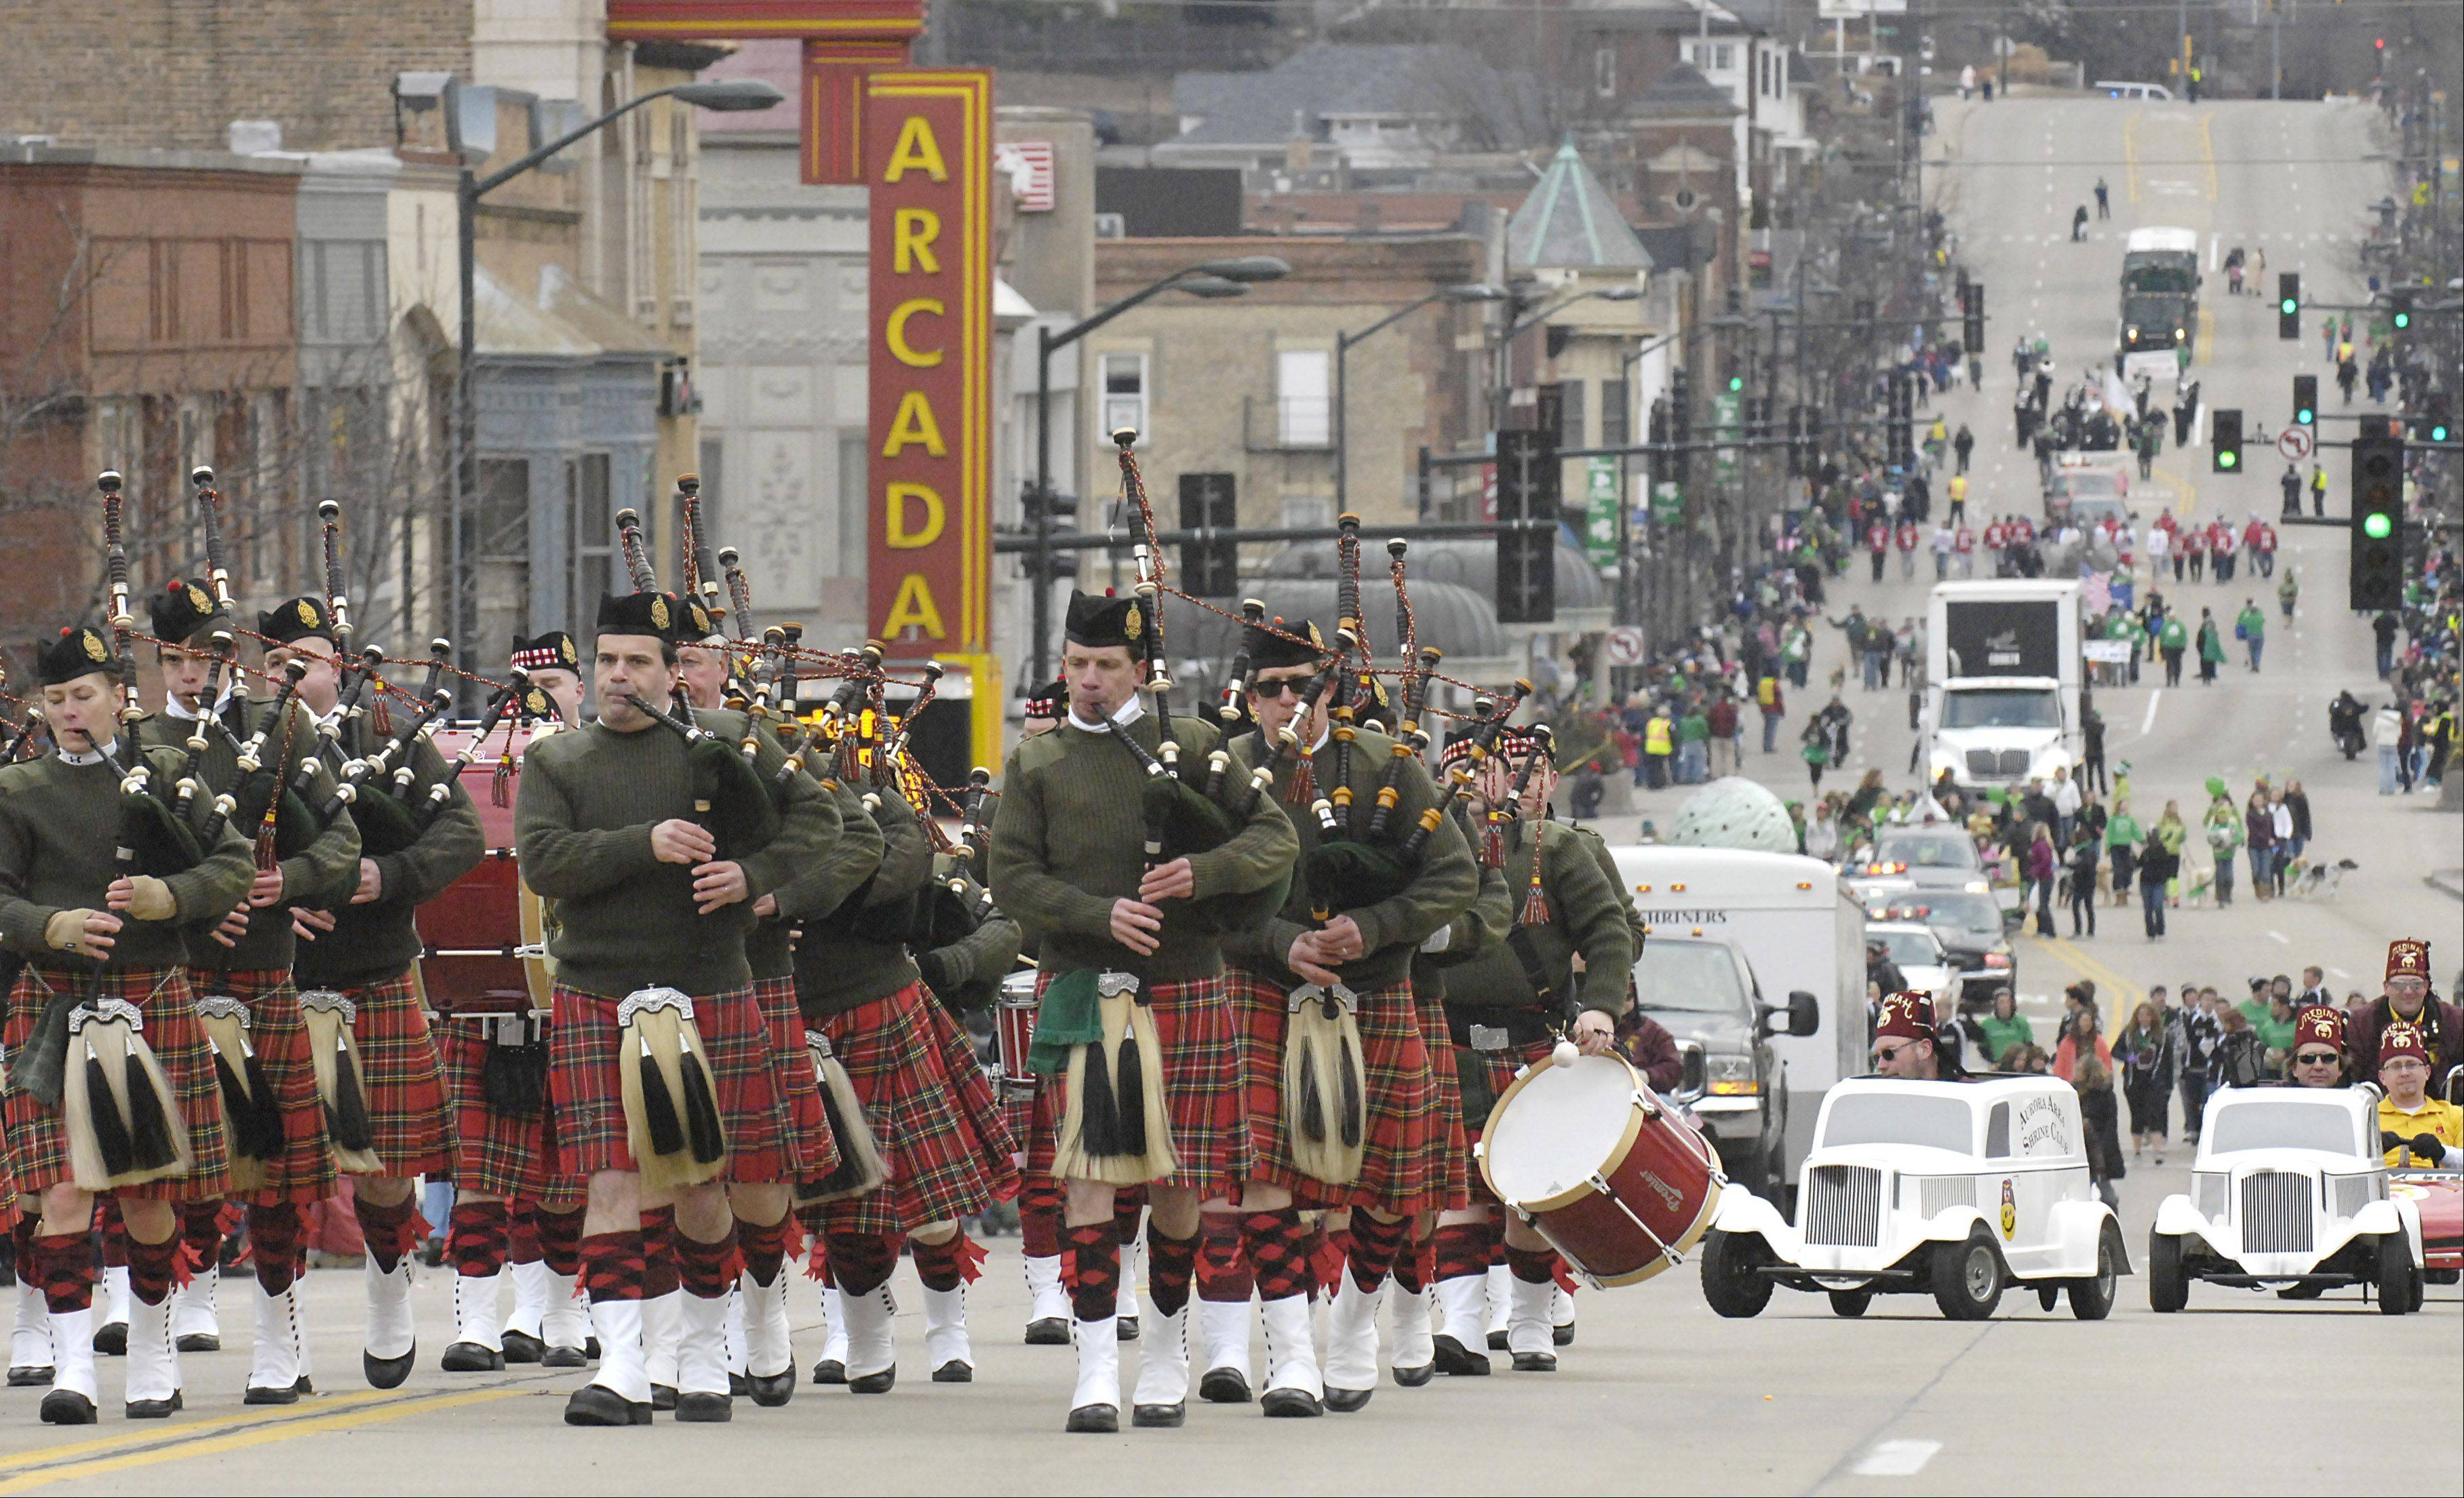 Parade entries are still being taken for participating in the St. Patrick's Day parade, which is slated for Saturday, March 16.